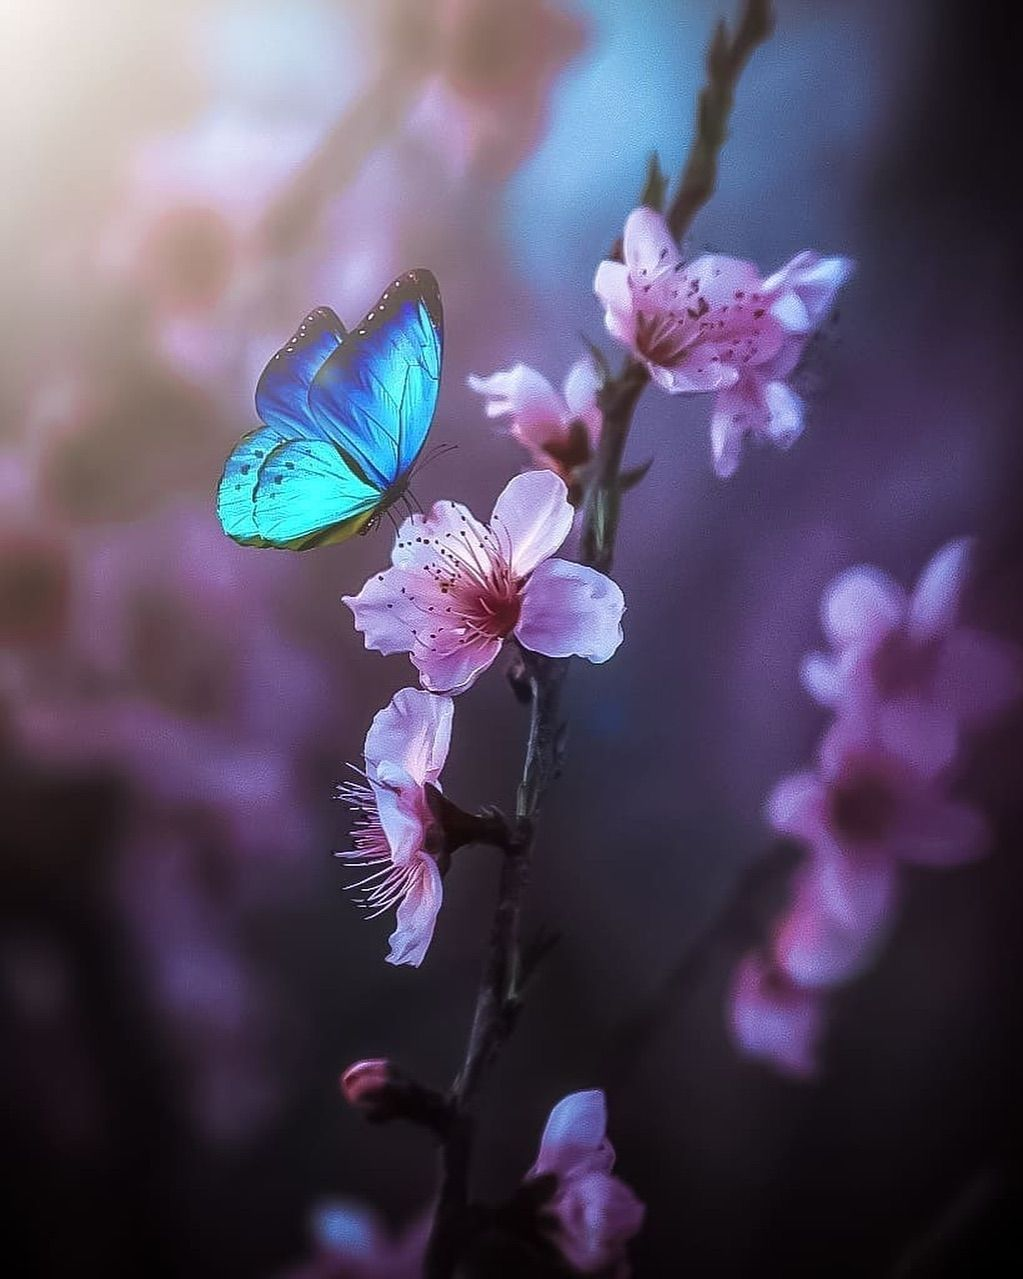 Nature On Instagram The Simplicity Beauty Of Nature Izmir Province Turkey Photo By Orhano Beautiful Butterflies Butterfly Wallpaper Flower Wallpaper